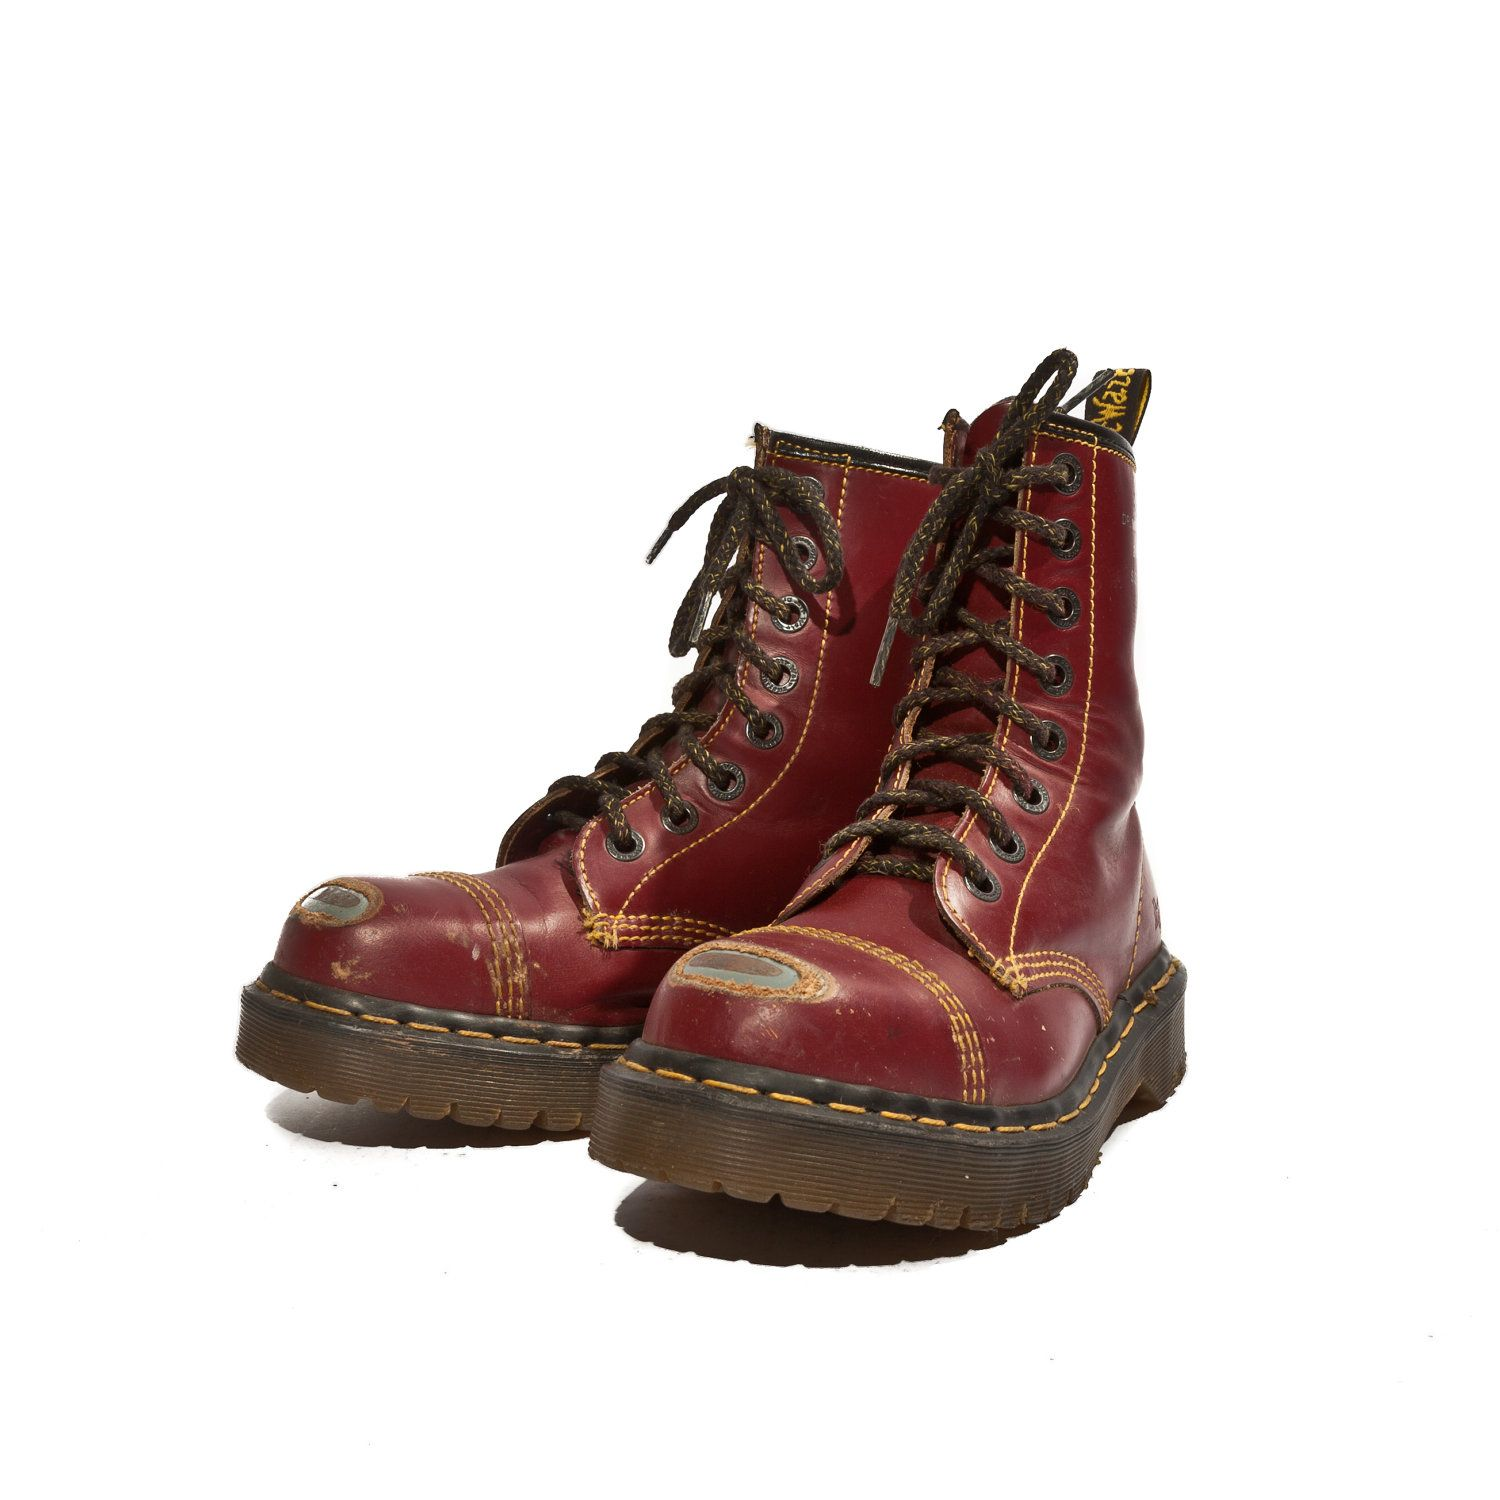 doc martens oxblood boots - Google Search